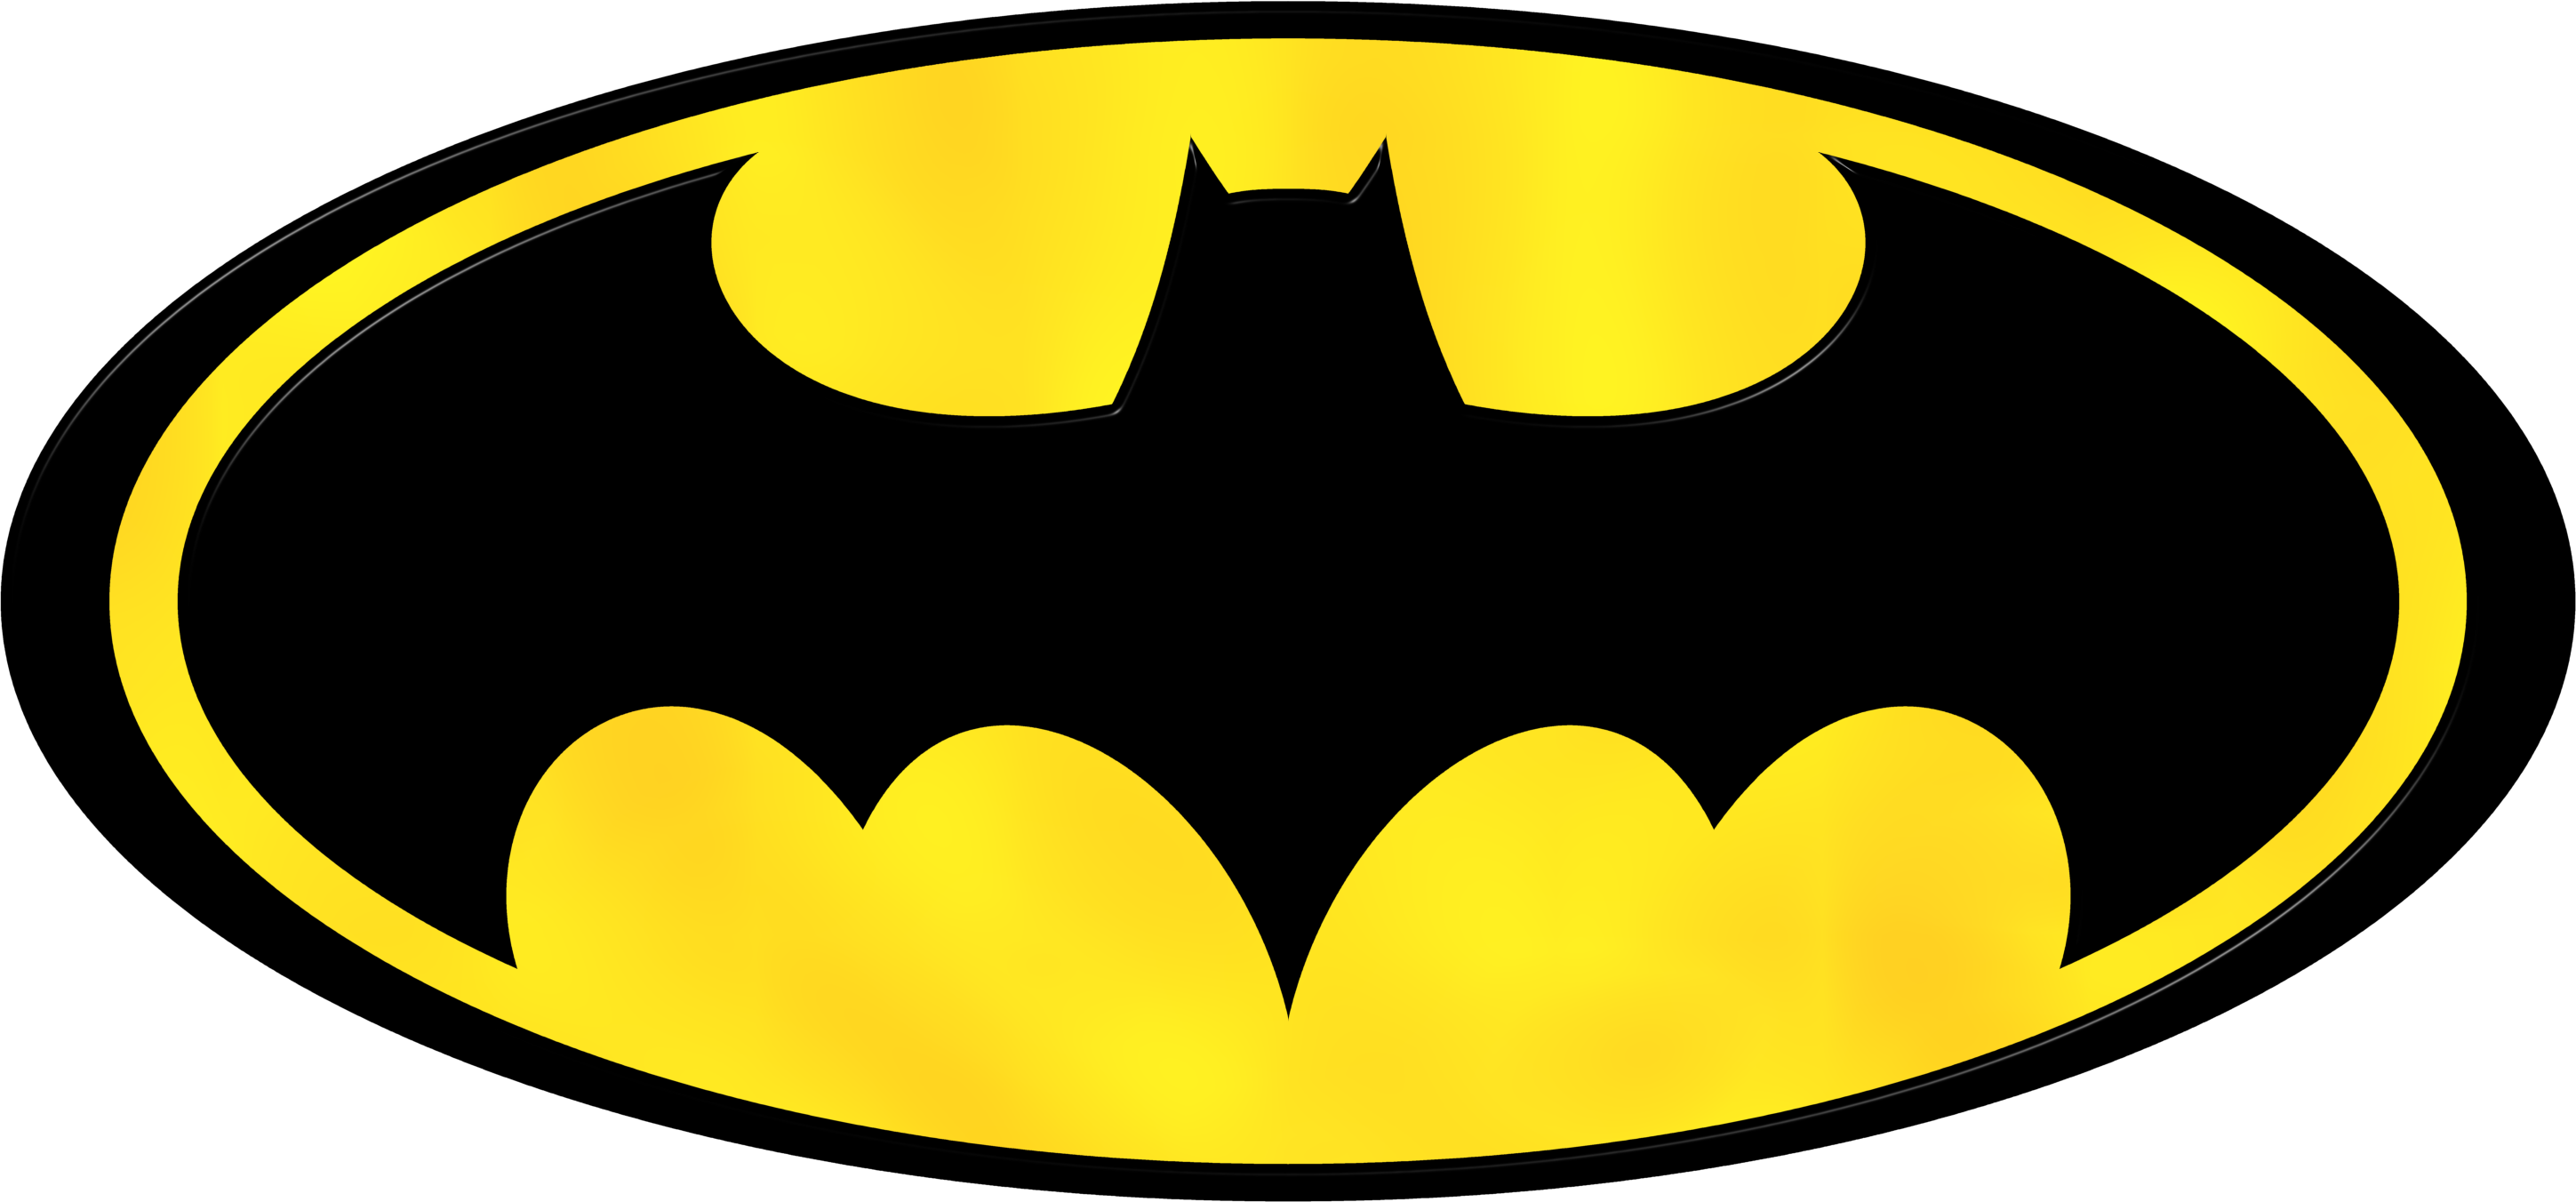 Batman logos png. Logo free transparent wallpaper